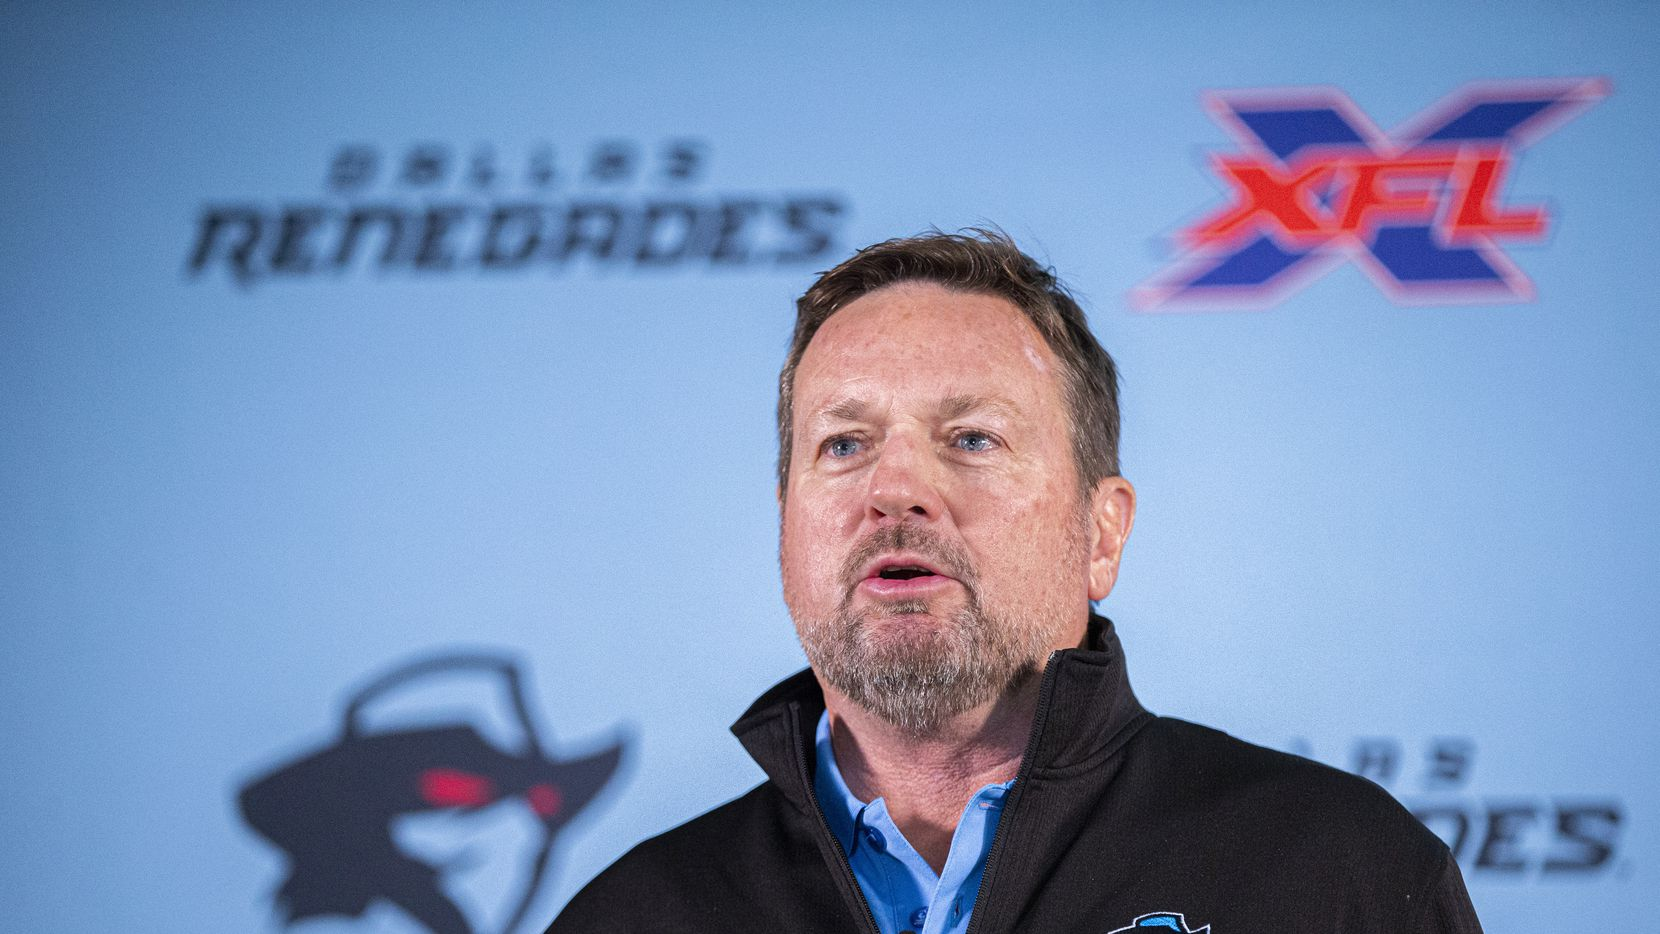 Dallas Renegades XFL team head coach Bob Stoops speaks during a press conference at the Hilton in Arlington, Tuesday, October 15, 2019.